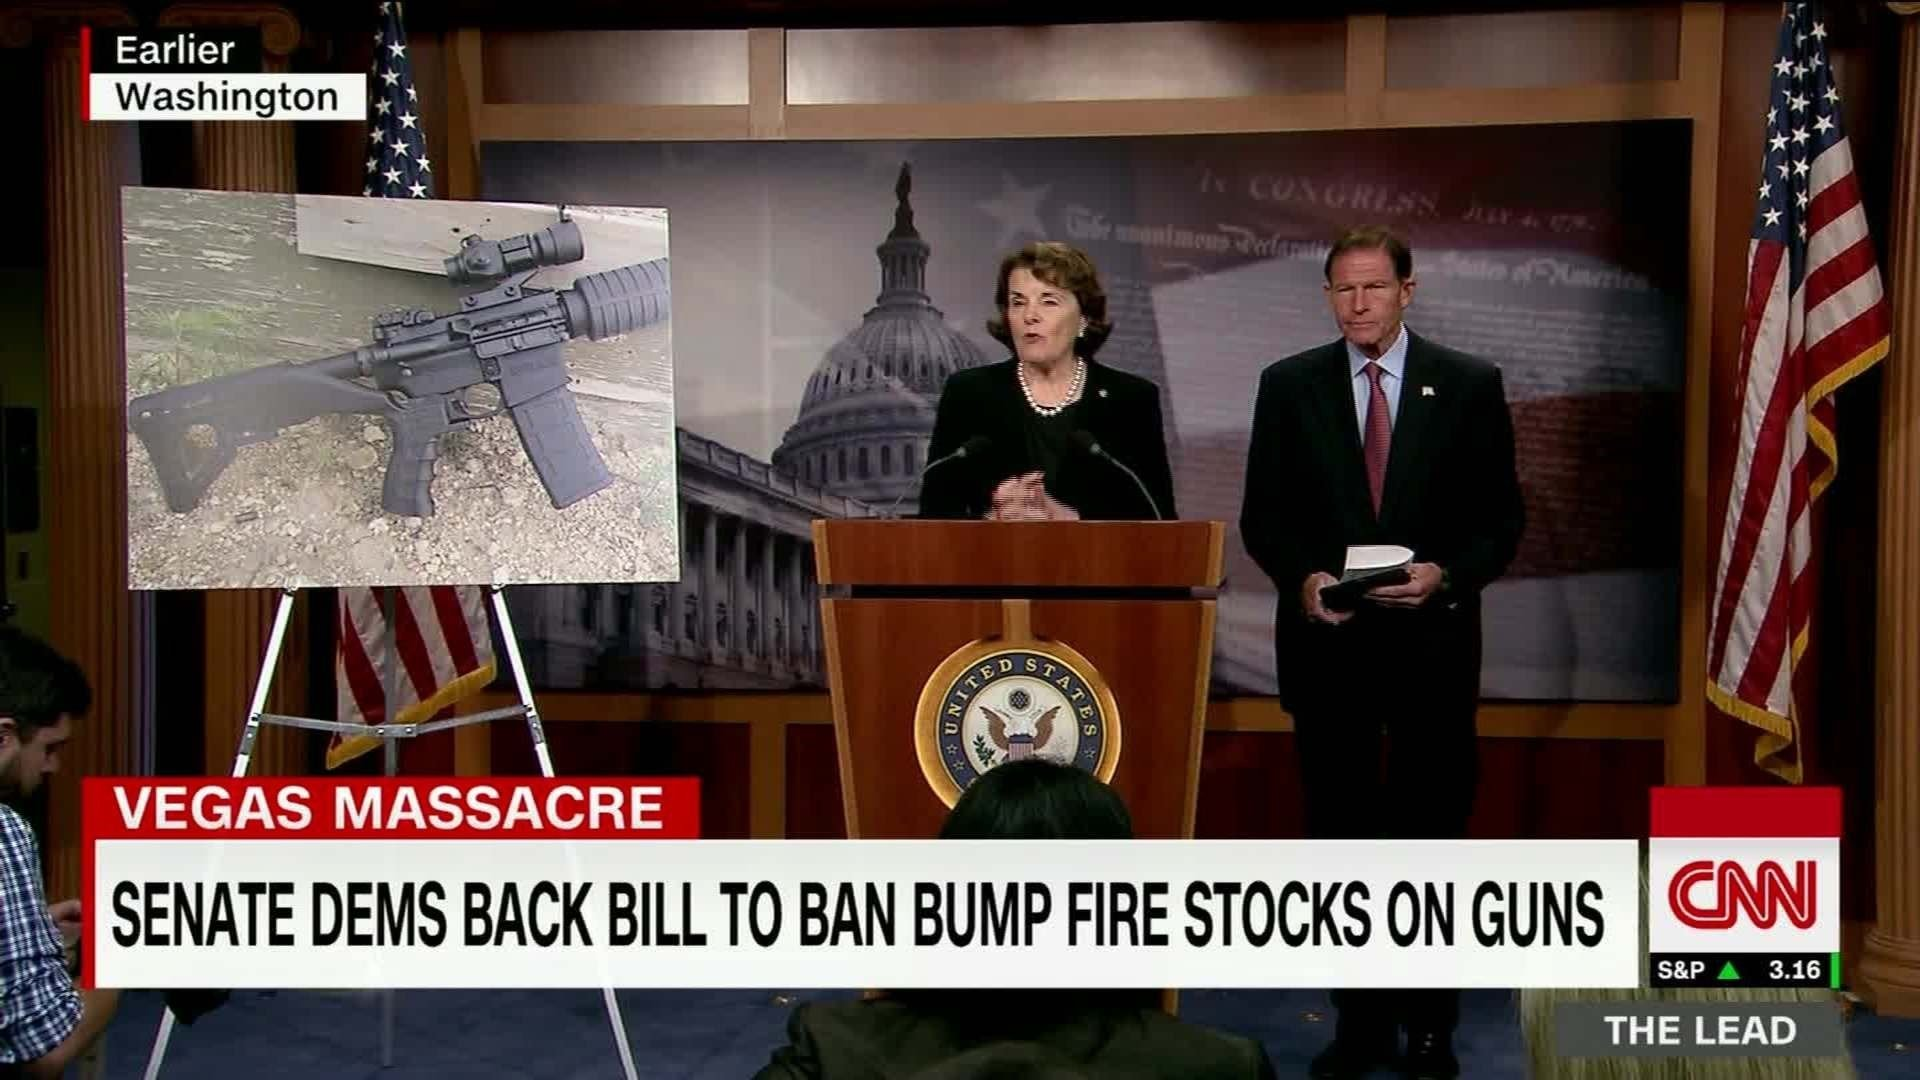 Sen. Dianne Feinstein introducing bill to ban bump fire stocks